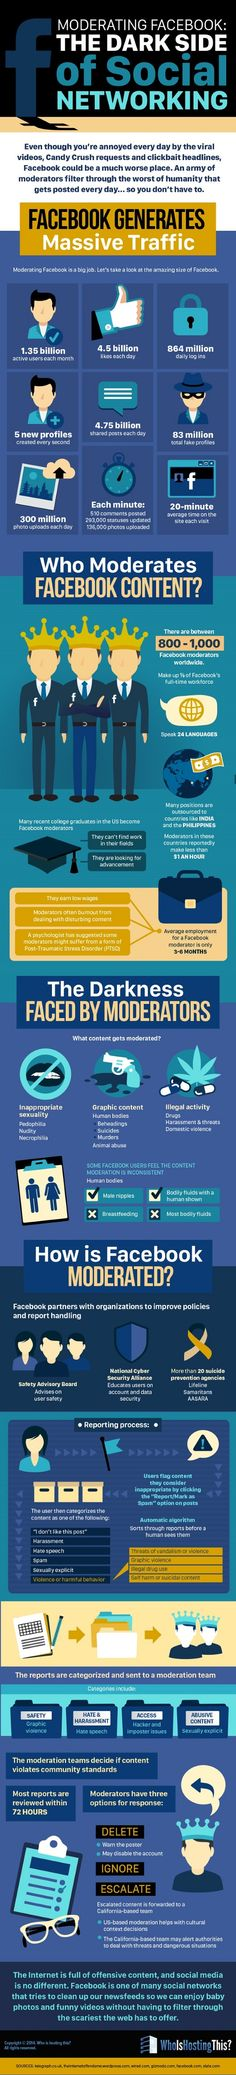 Infographic: Hidden Facts About How Facebook Is Moderated - DesignTAXI.com